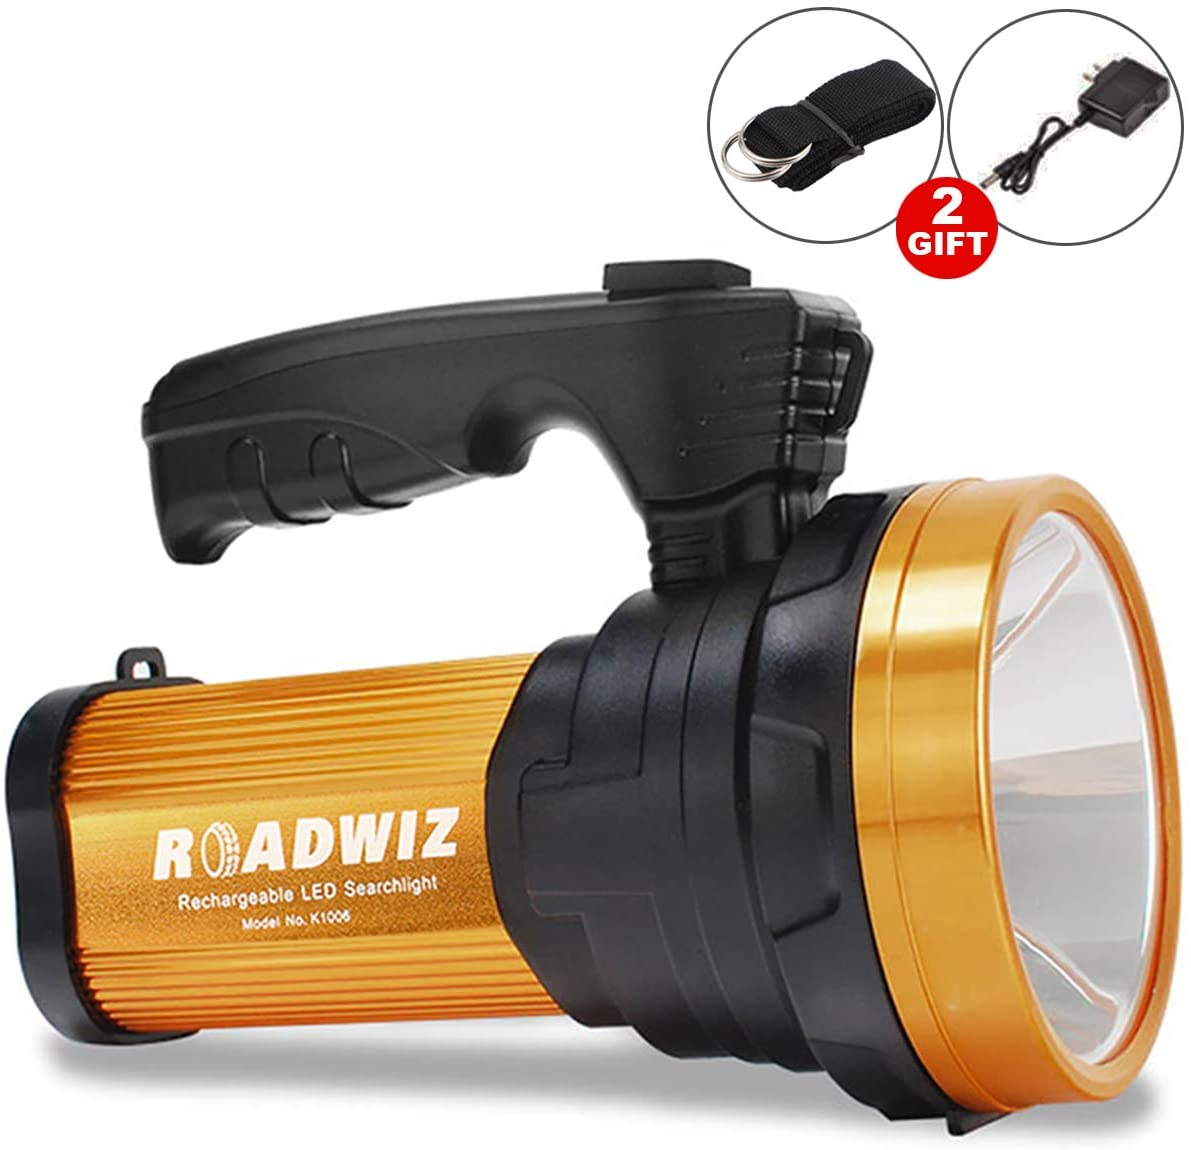 Super Bright LED Flashlight Rechargeable Searchlight Handheld Tactical Spotlight Floodlight Portable High Power 6000 Lumens Large Battery Long Lasting, with USB Output as a Power Bank Working Torch